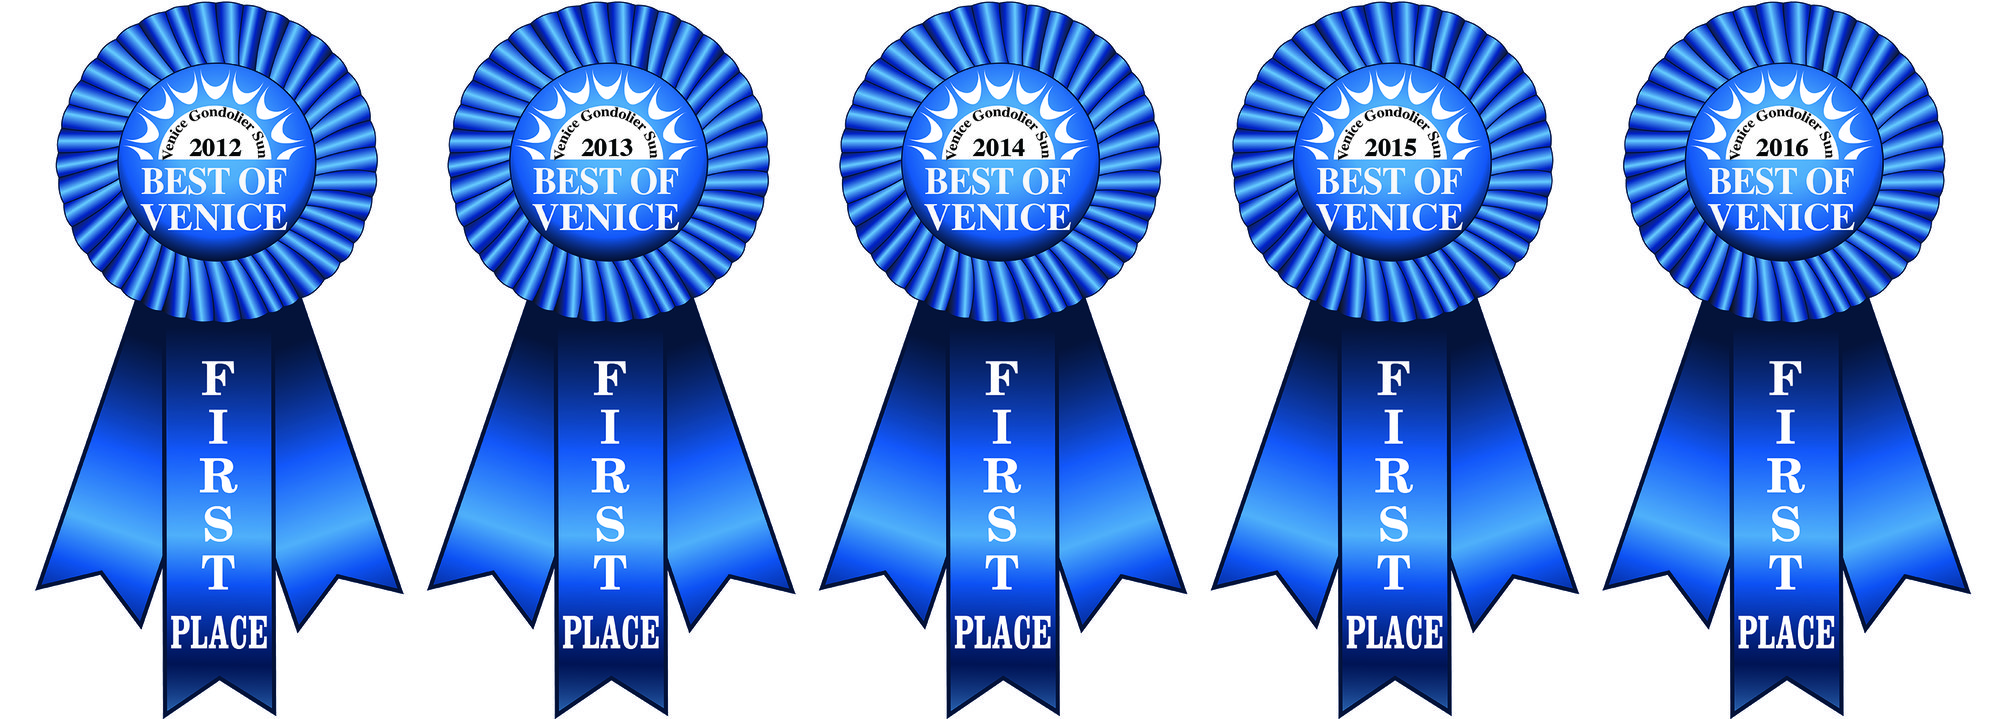 Best of Venice Blue Ribbons